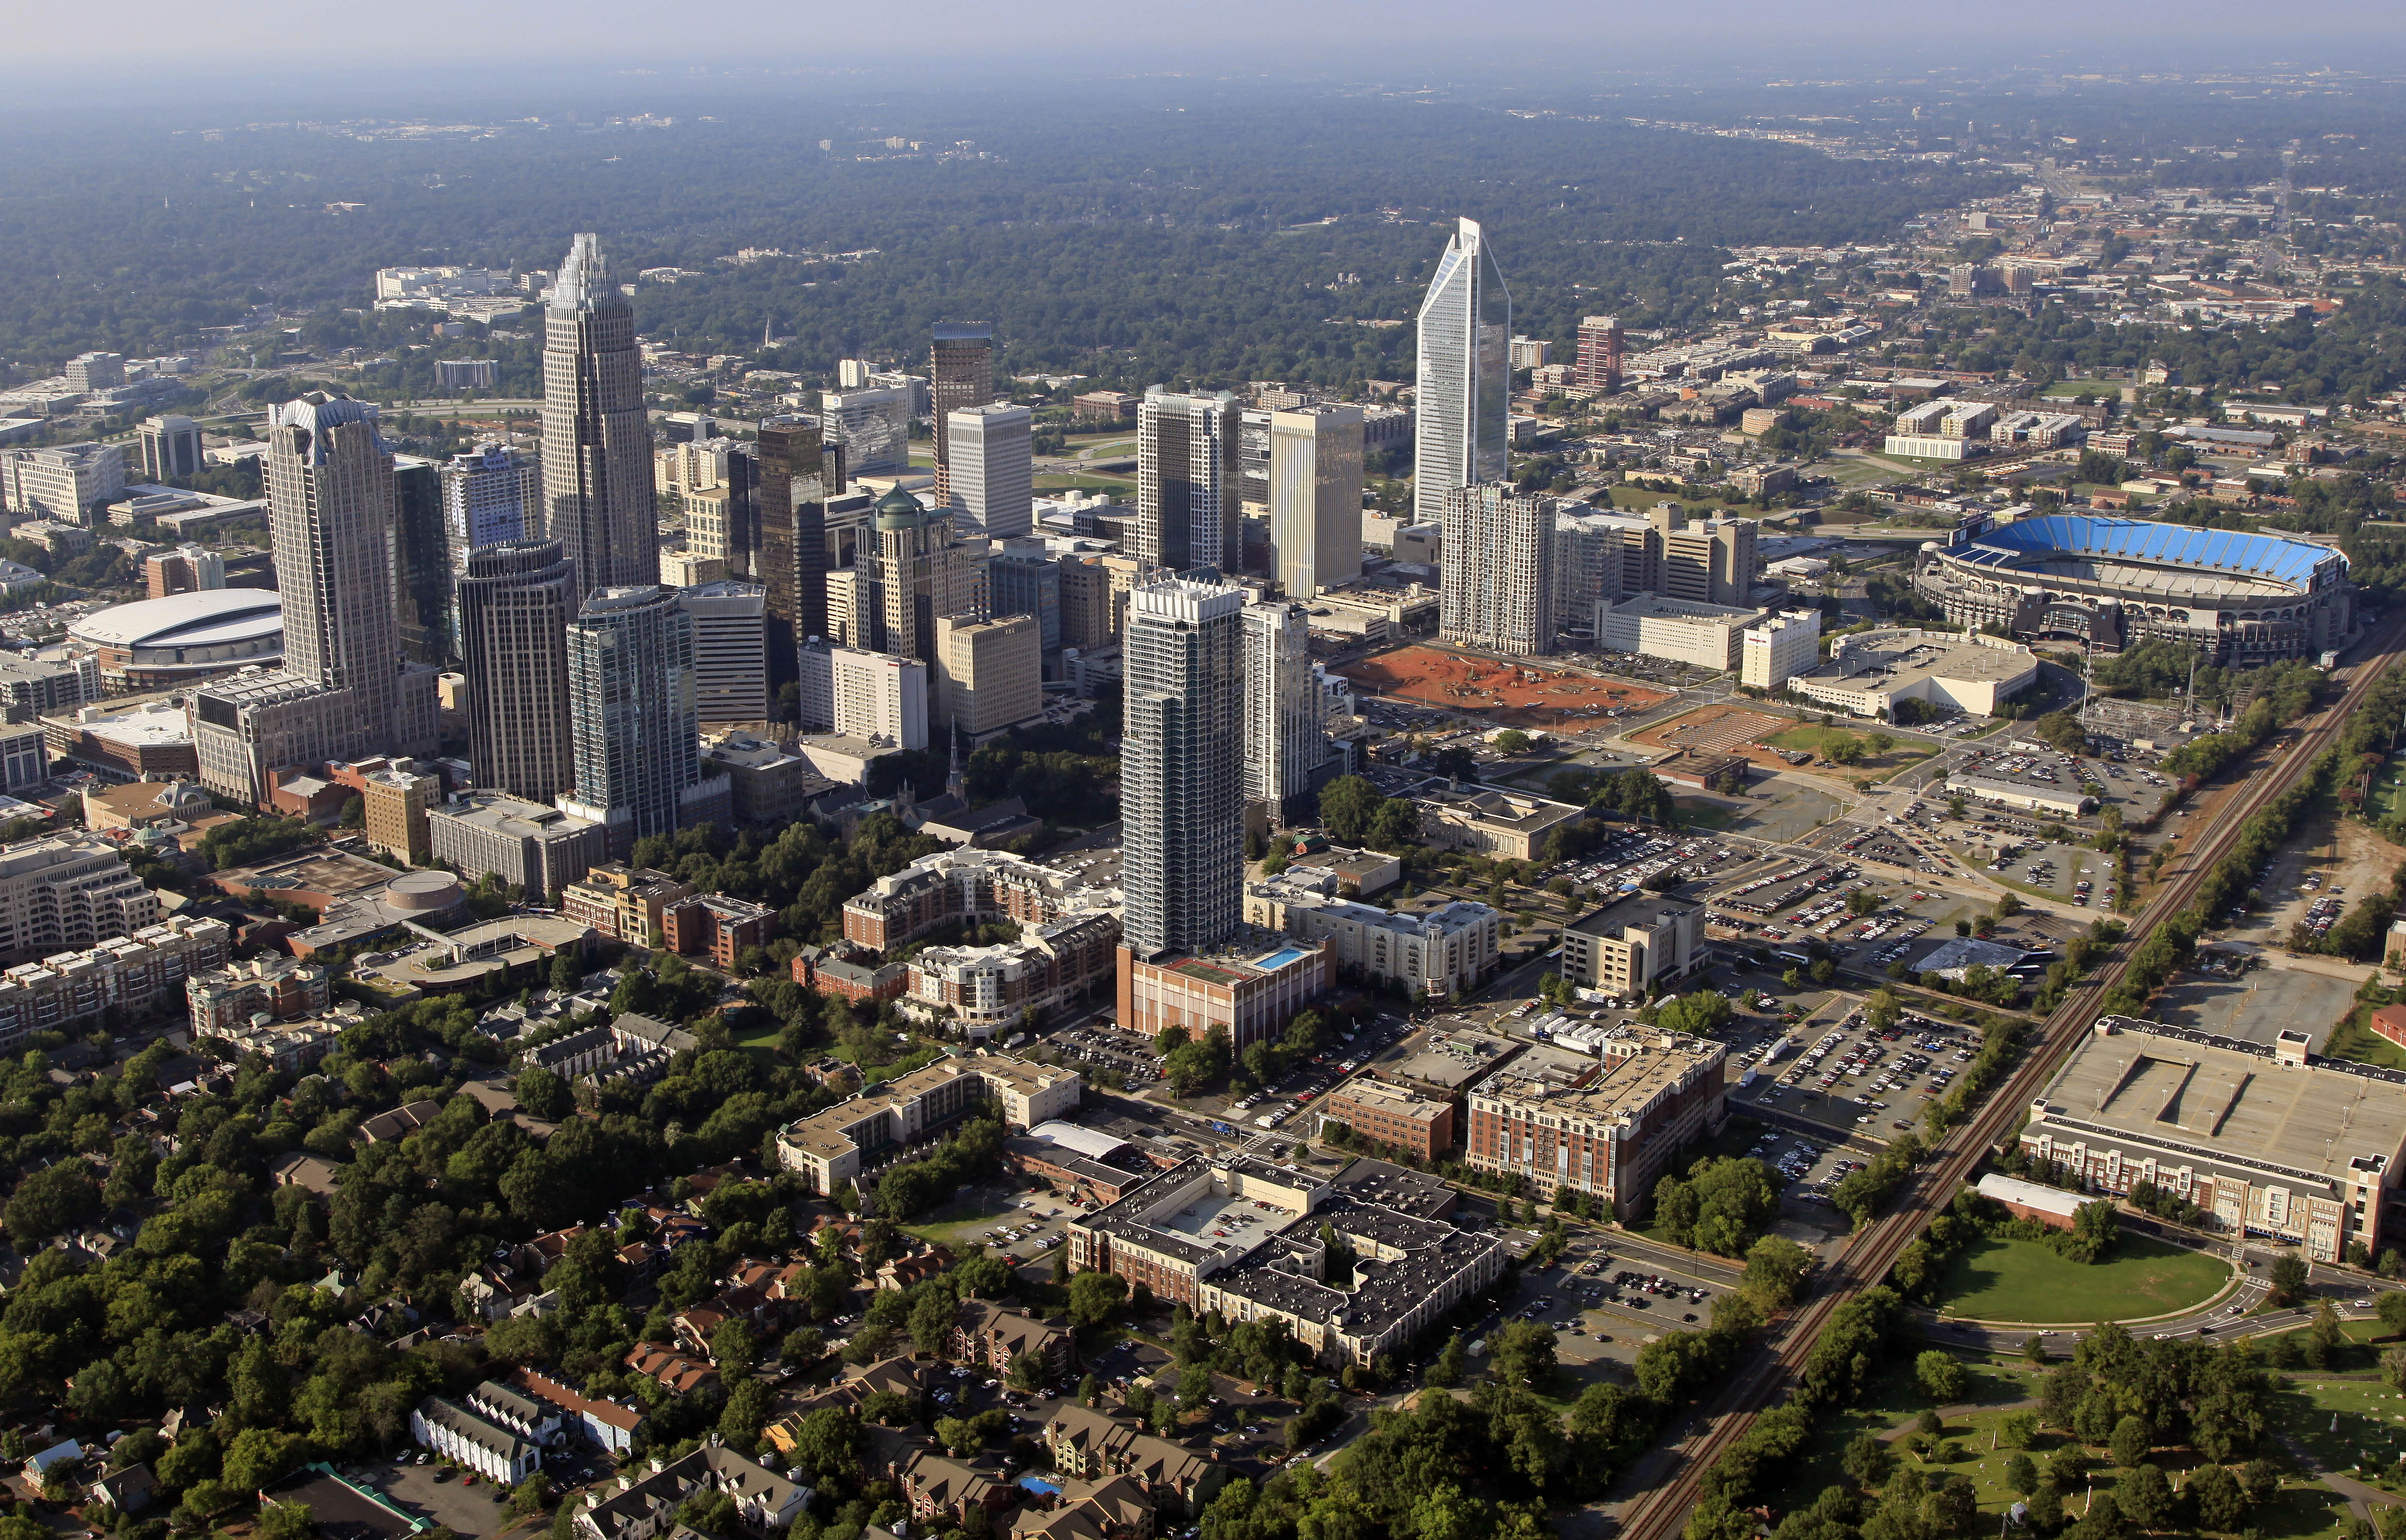 How 6 newsrooms in Charlotte are trying to create a local